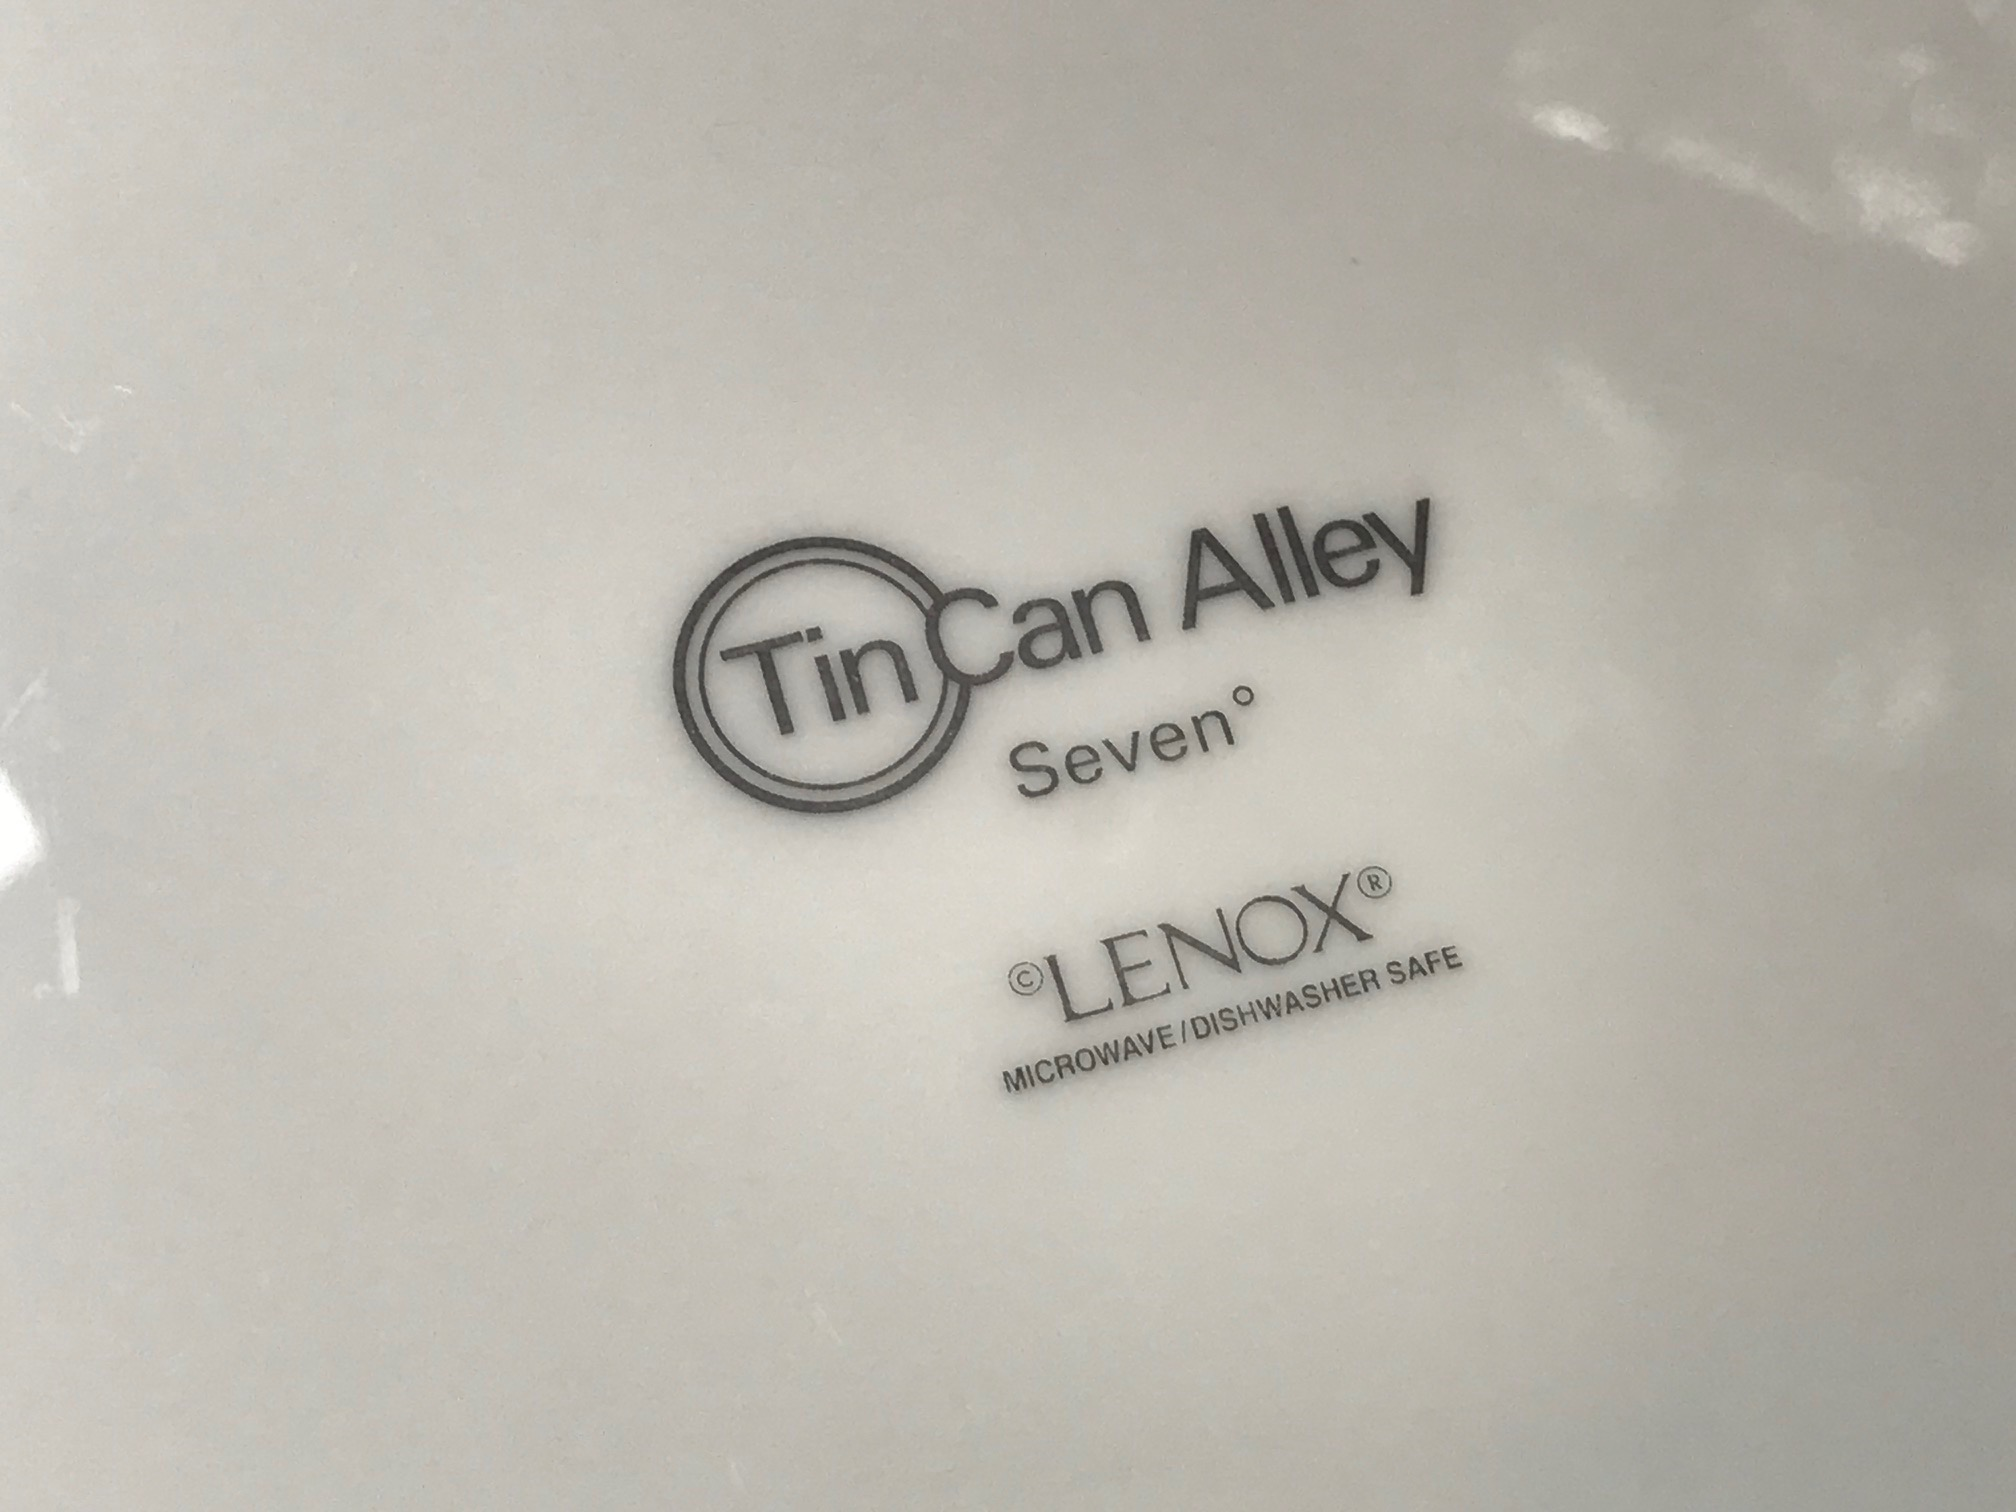 "XRF Test Results For Lenox Tin Can Alley ""Seven"" Dinner Plate"